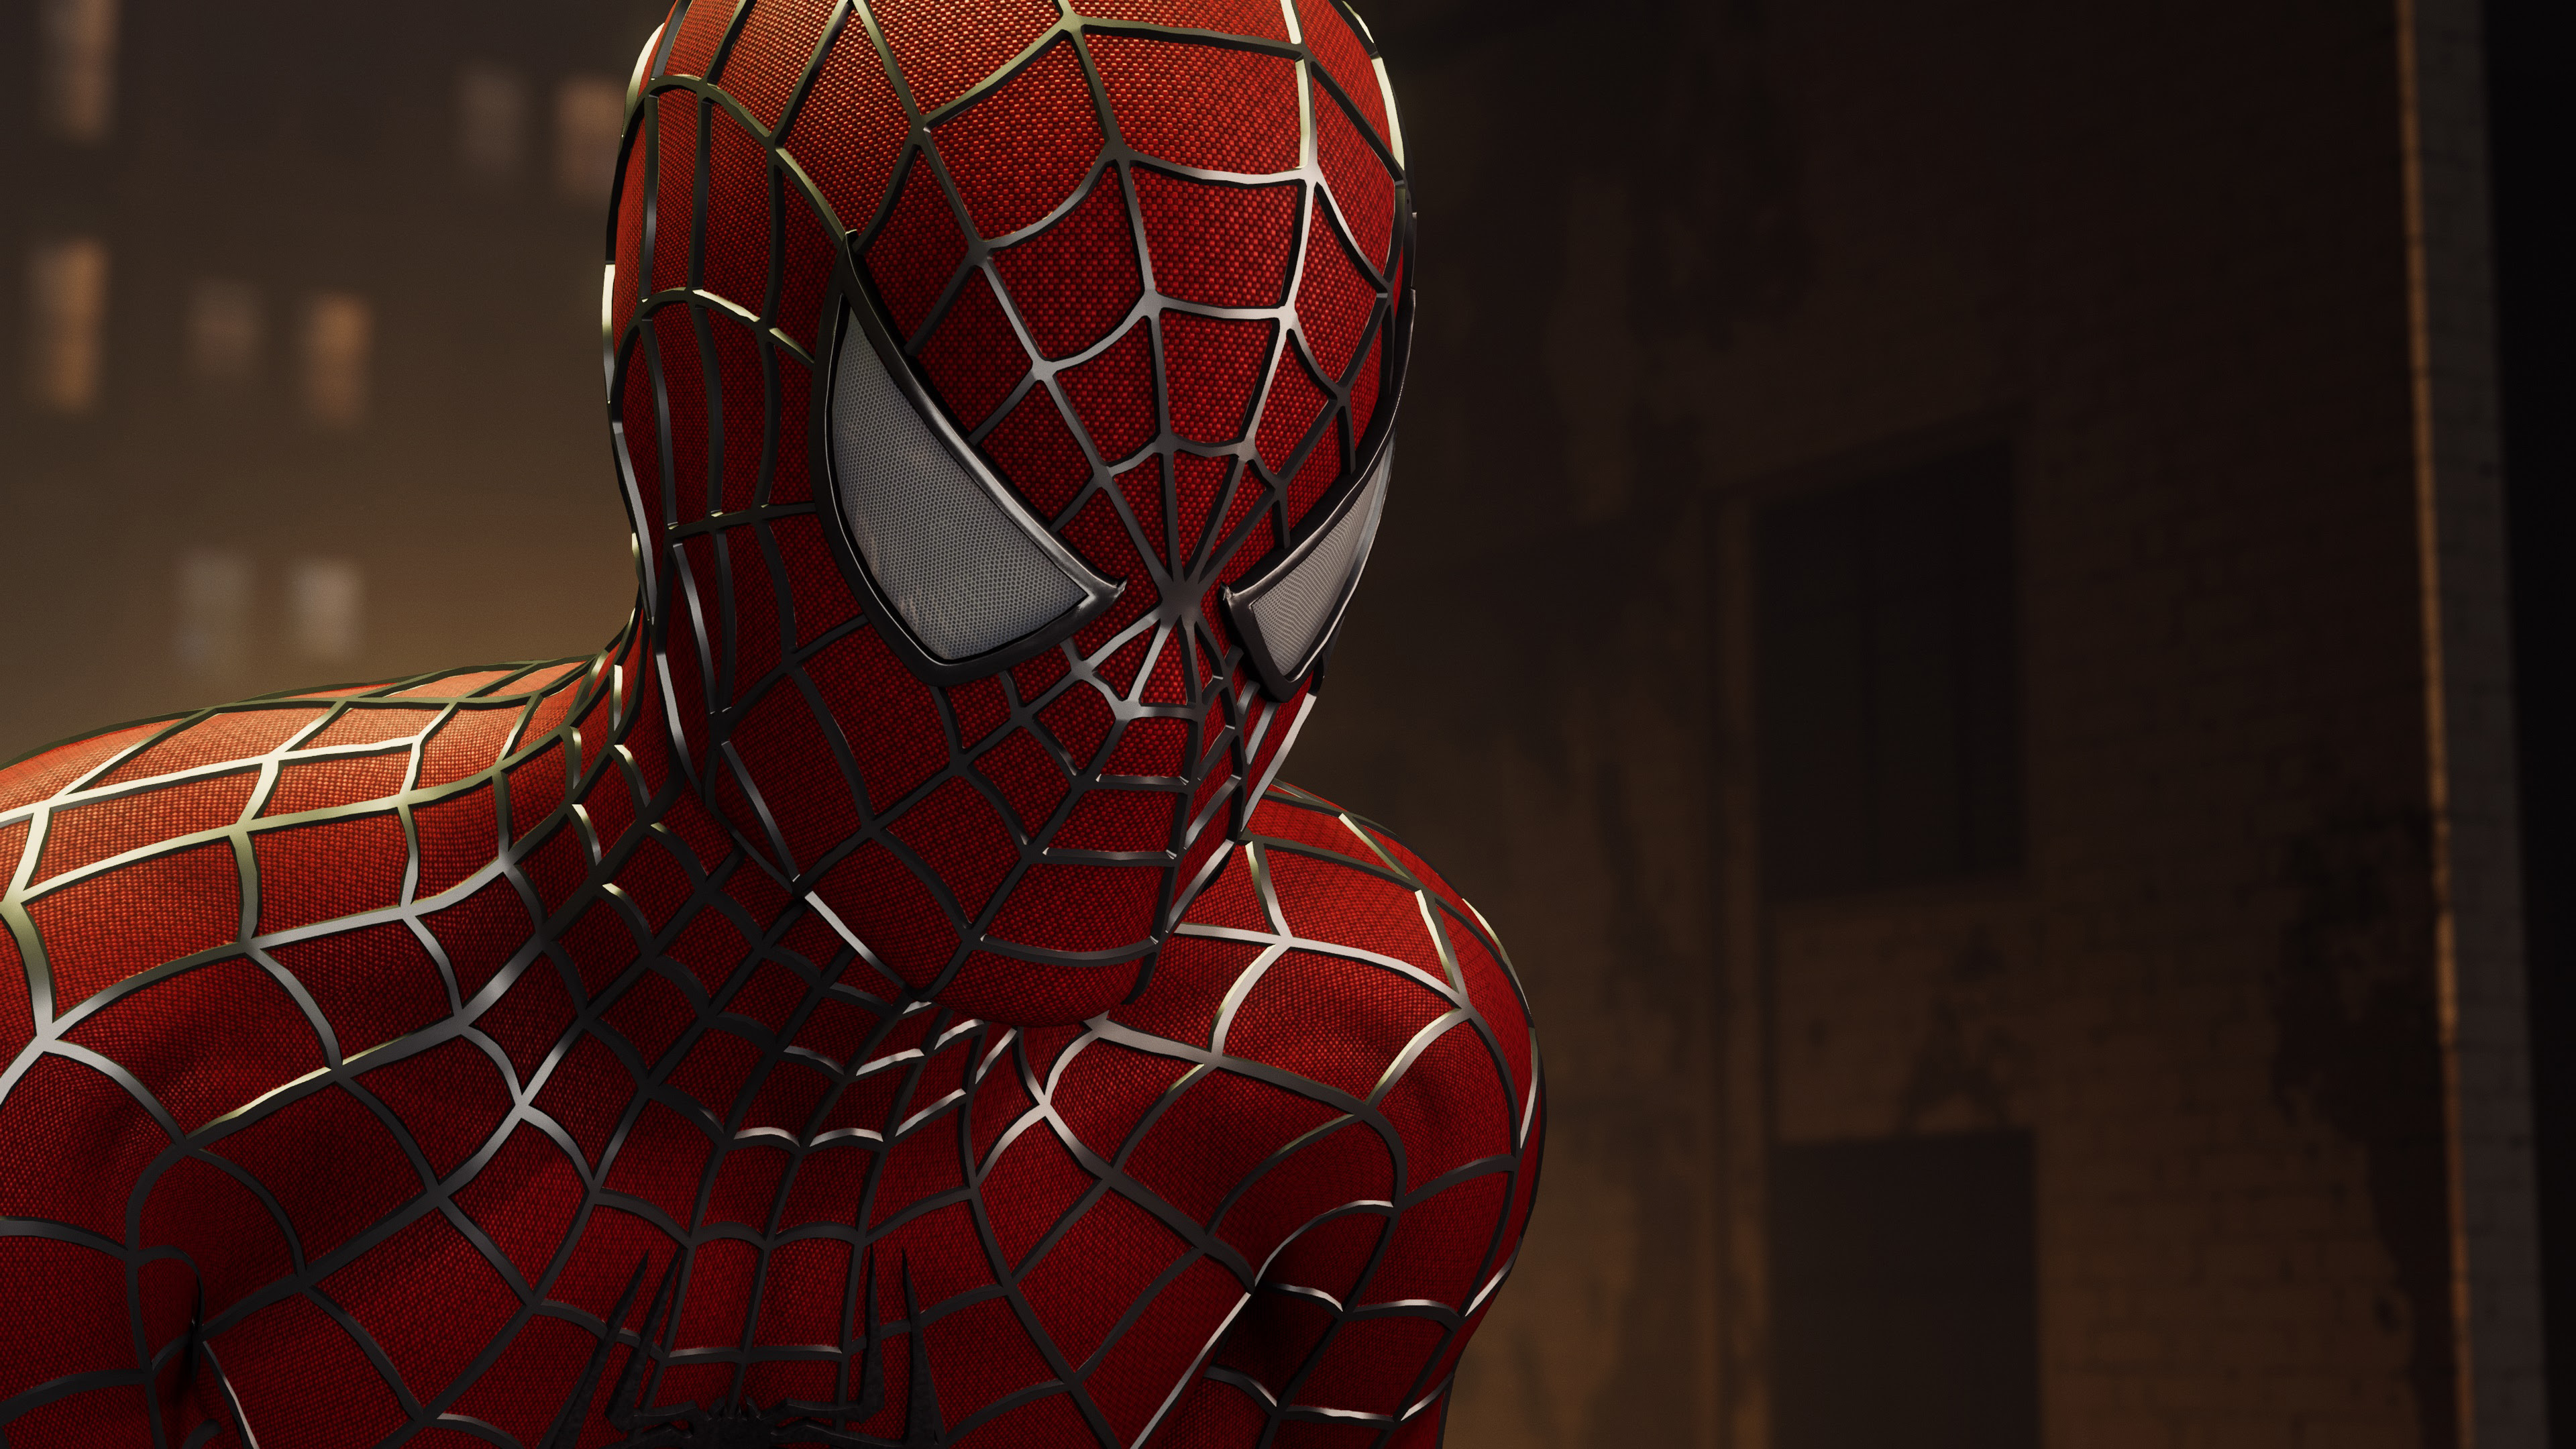 Spiderman 4k 2019, HD Games, 4k Wallpapers, Images ...